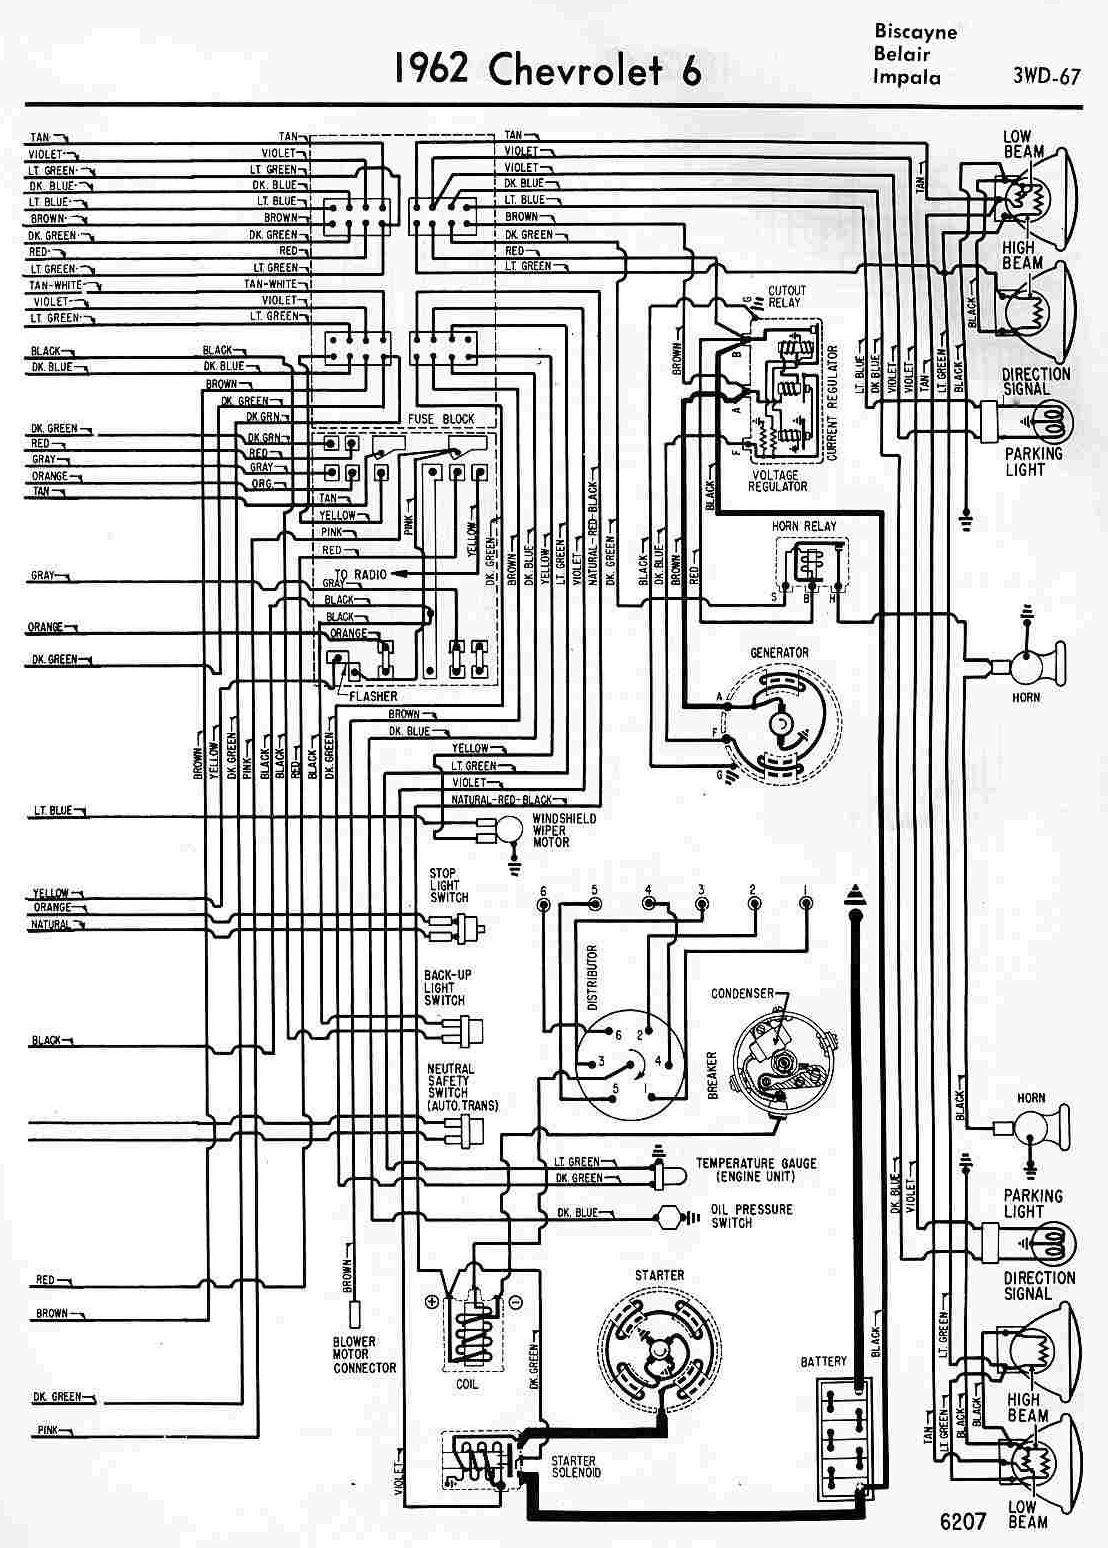 1962+Chevrolet+6+Biscayne%252C+Belair+and+Impala+Wiring+Diagram december 2011 all about wiring diagrams 2004 chevy silverado ac wiring diagram at alyssarenee.co